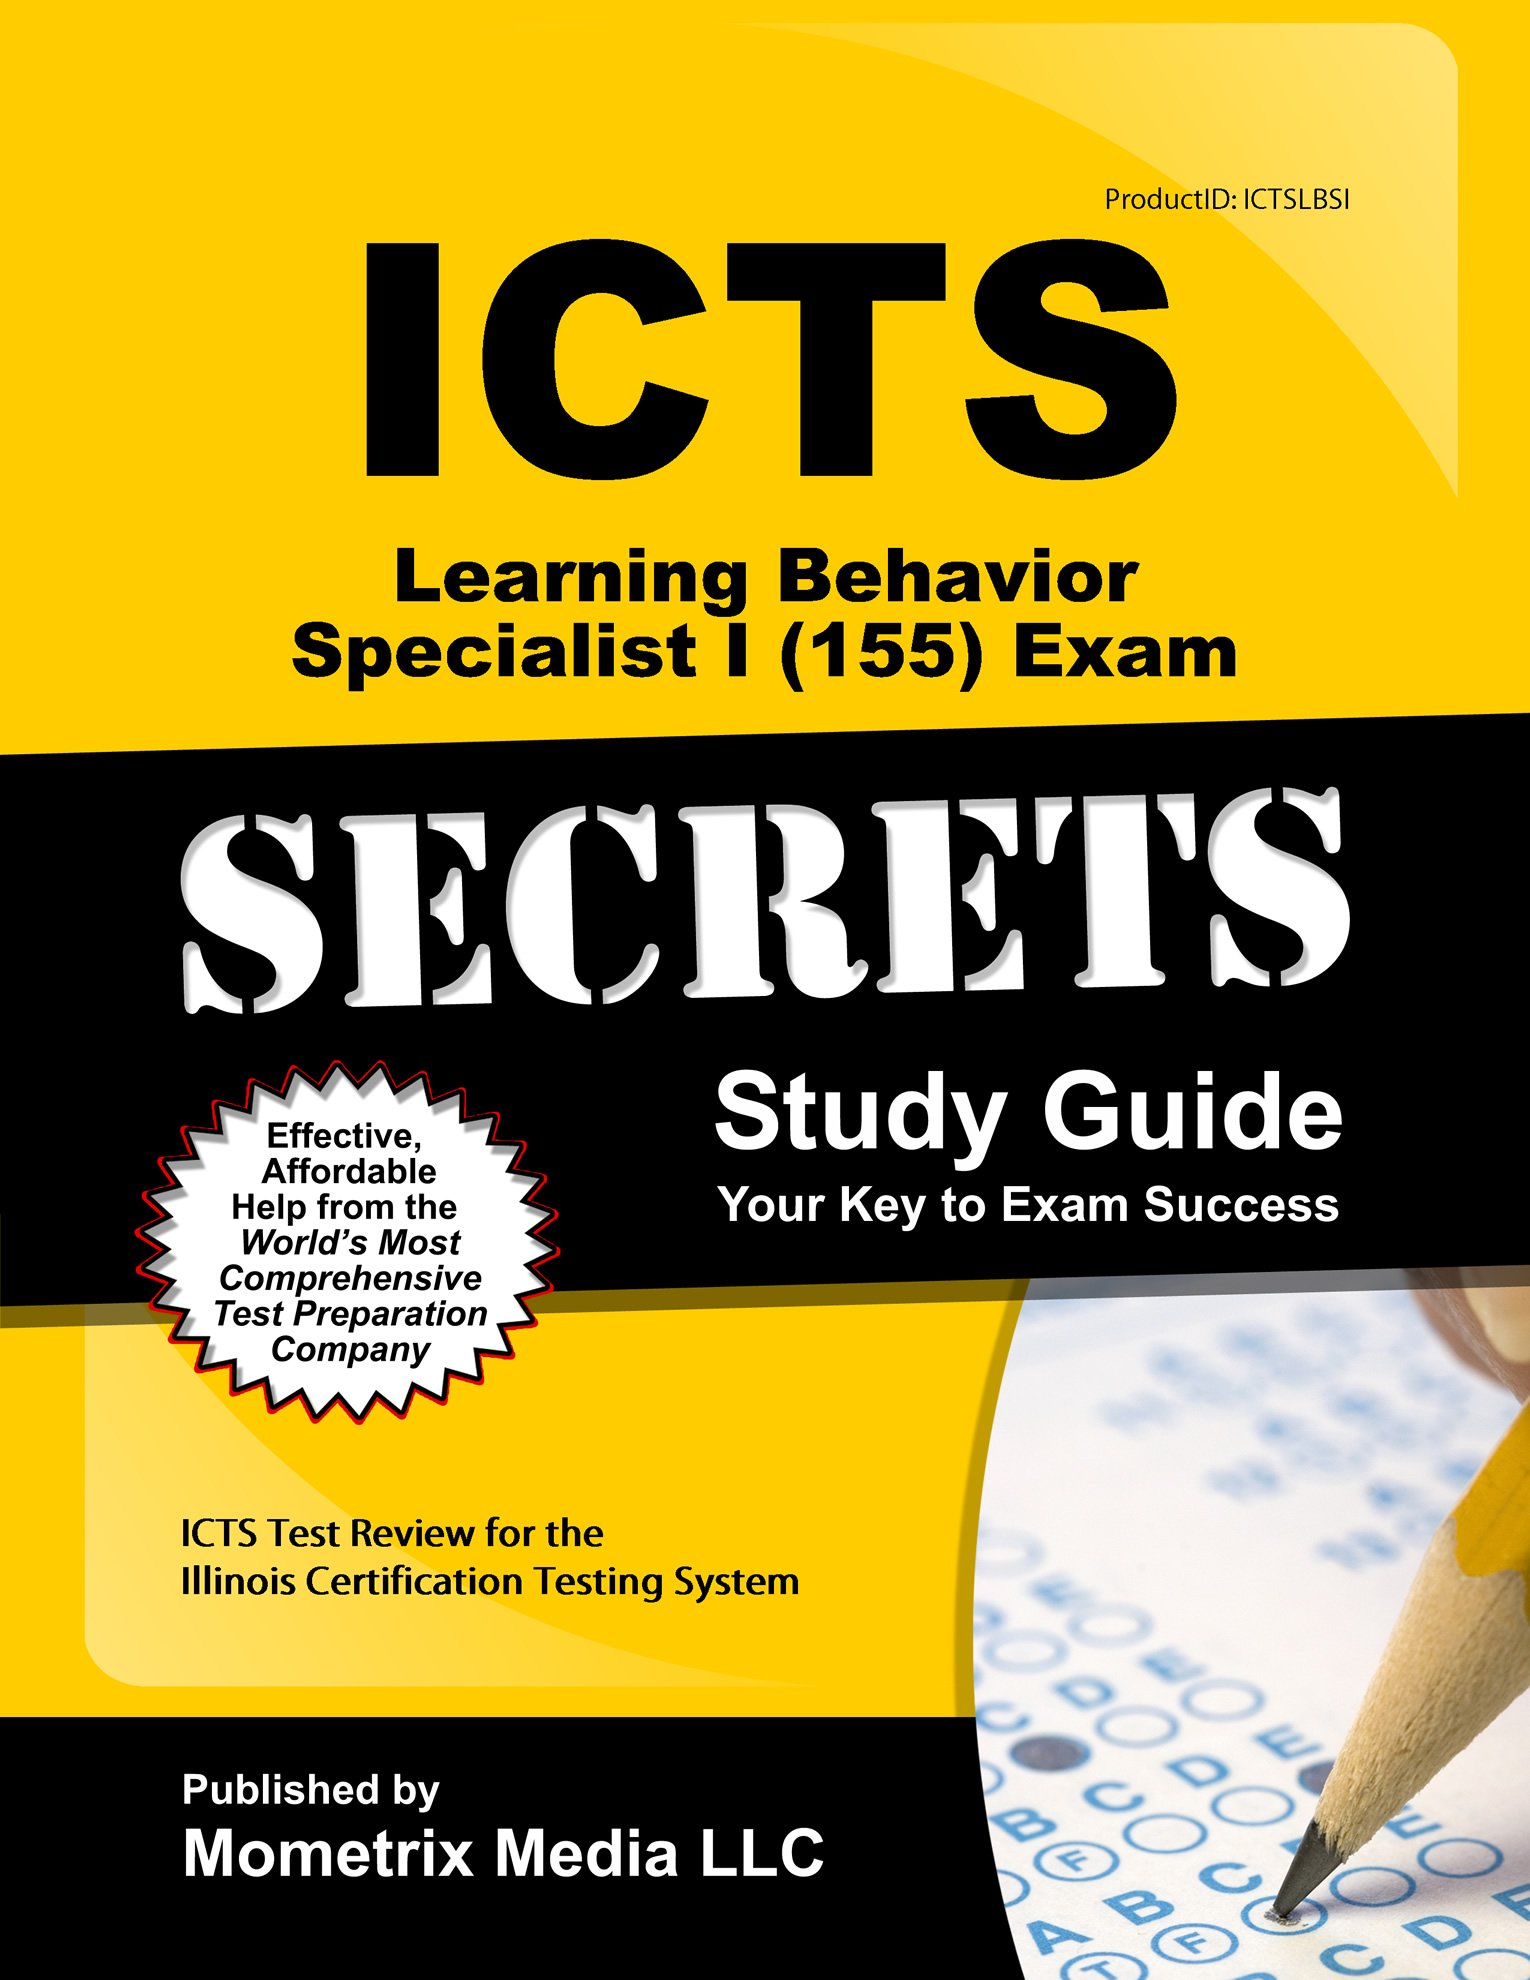 Icts learning behavior specialist i 155 exam secrets study guide icts learning behavior specialist i 155 exam secrets study guide icts test review for the illinois certification testing system icts exam secrets test 1betcityfo Gallery